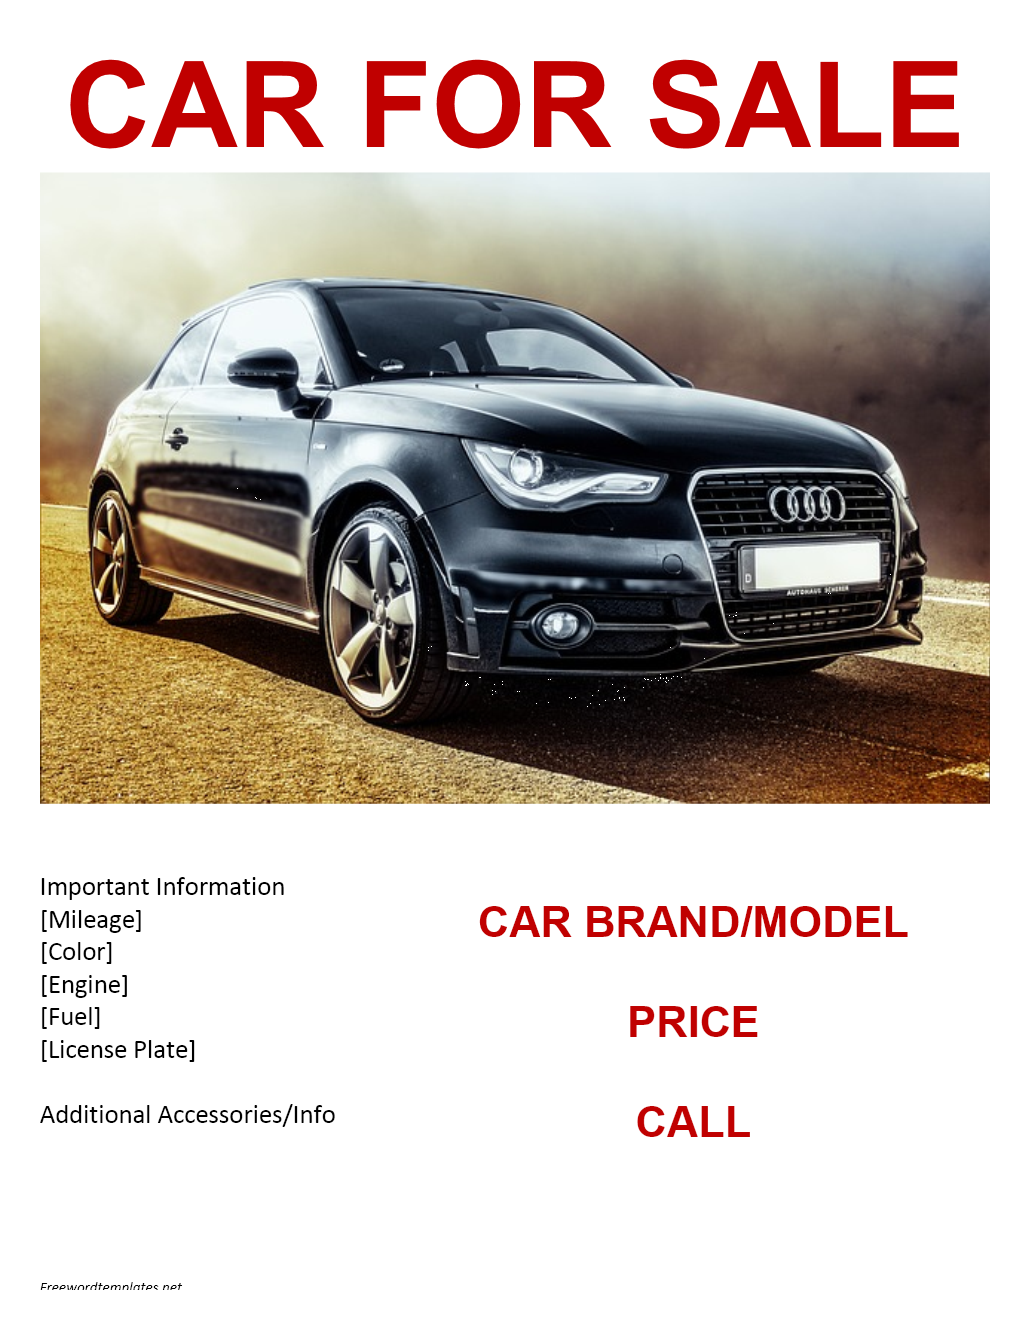 Freewordtemplates.net  Car For Sale Sign Template Free